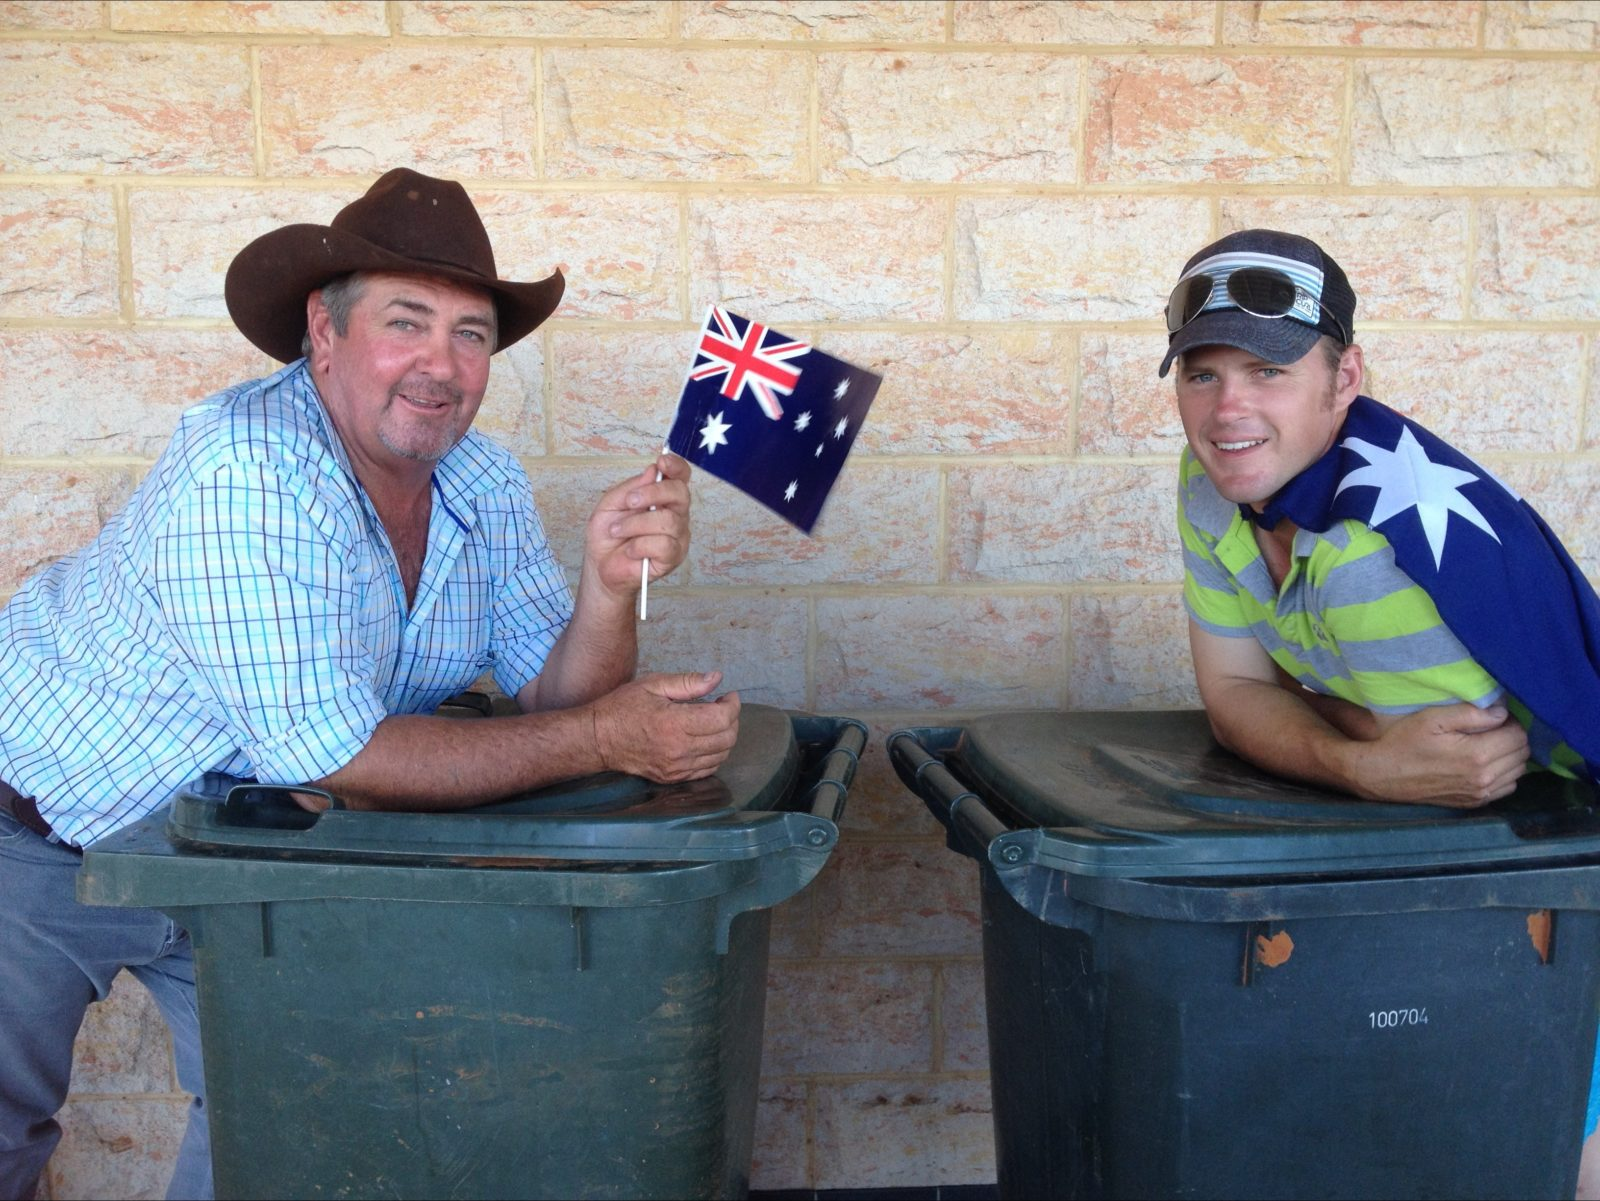 A couple of locals at the Australia Day celebrations.